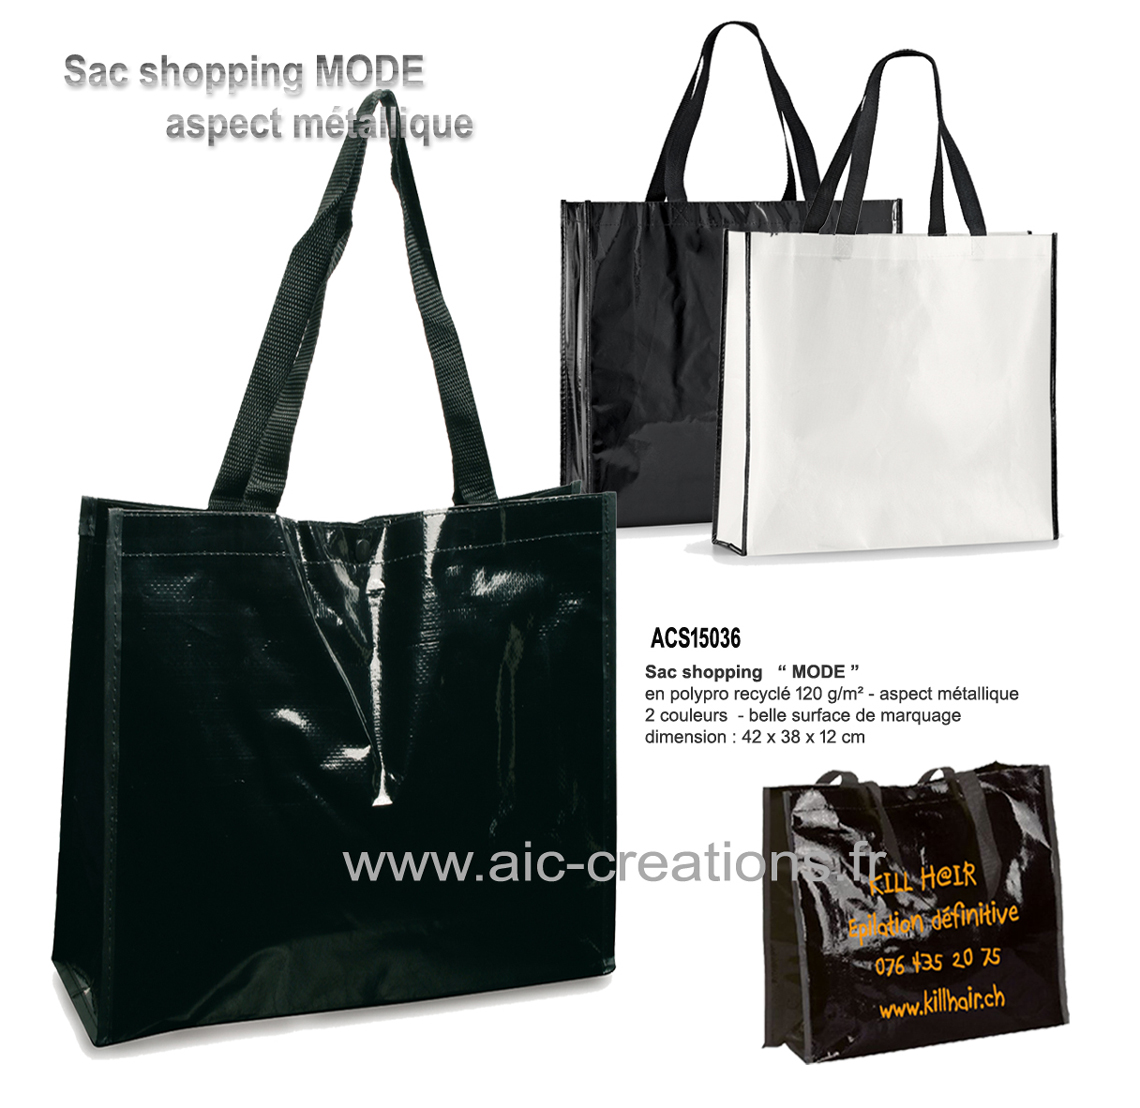 bagagerie publicitaire, sac shopping bio aspect metallique, developpement durable sac shopping MODE, sac boutique, grande surface de marquage